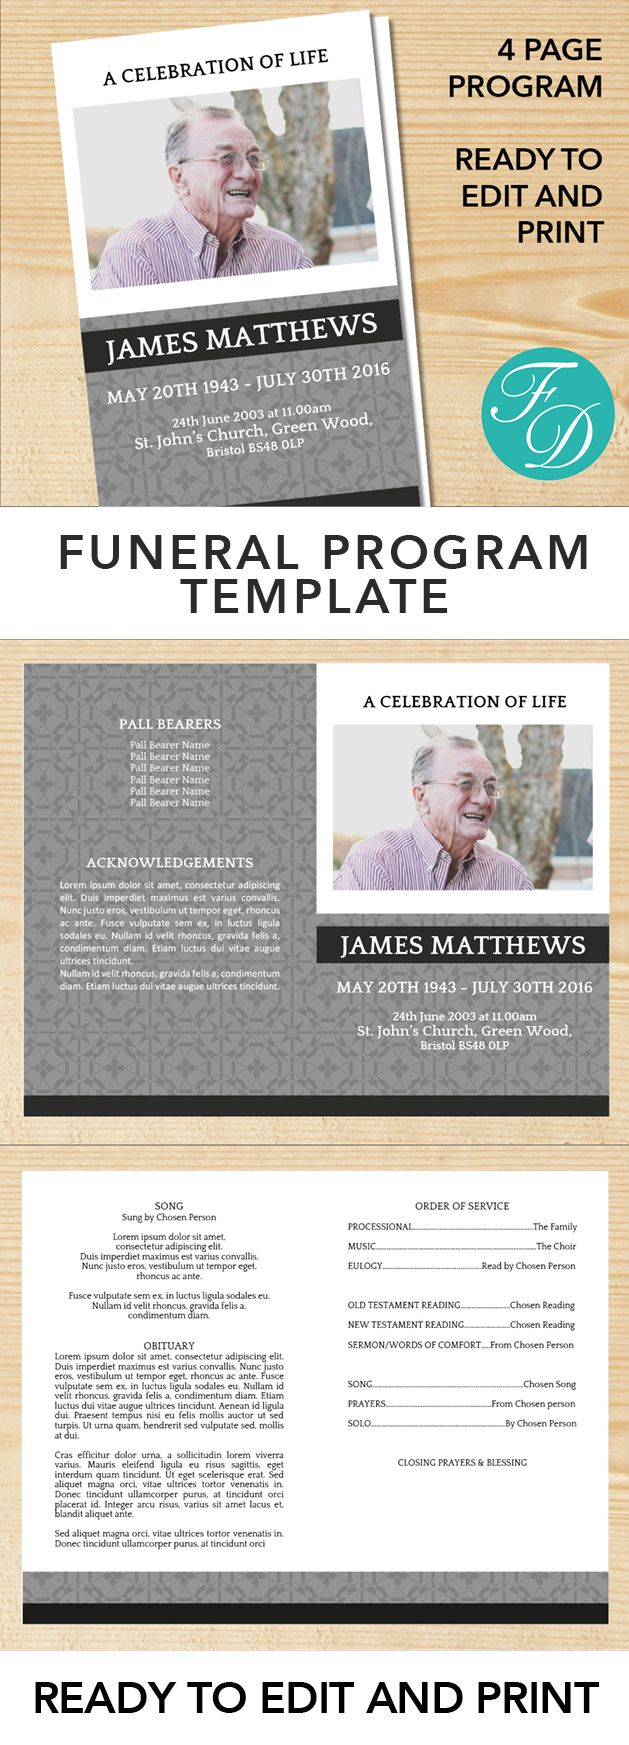 Printable Funeral program ready to edit & print. Simply purchase your funeral templates, download, edit with Microsoft Word and print. #obituarytemplate #memorialprogram #funeralprograms #funeraltemplate #printableprogram #celebrationoflife